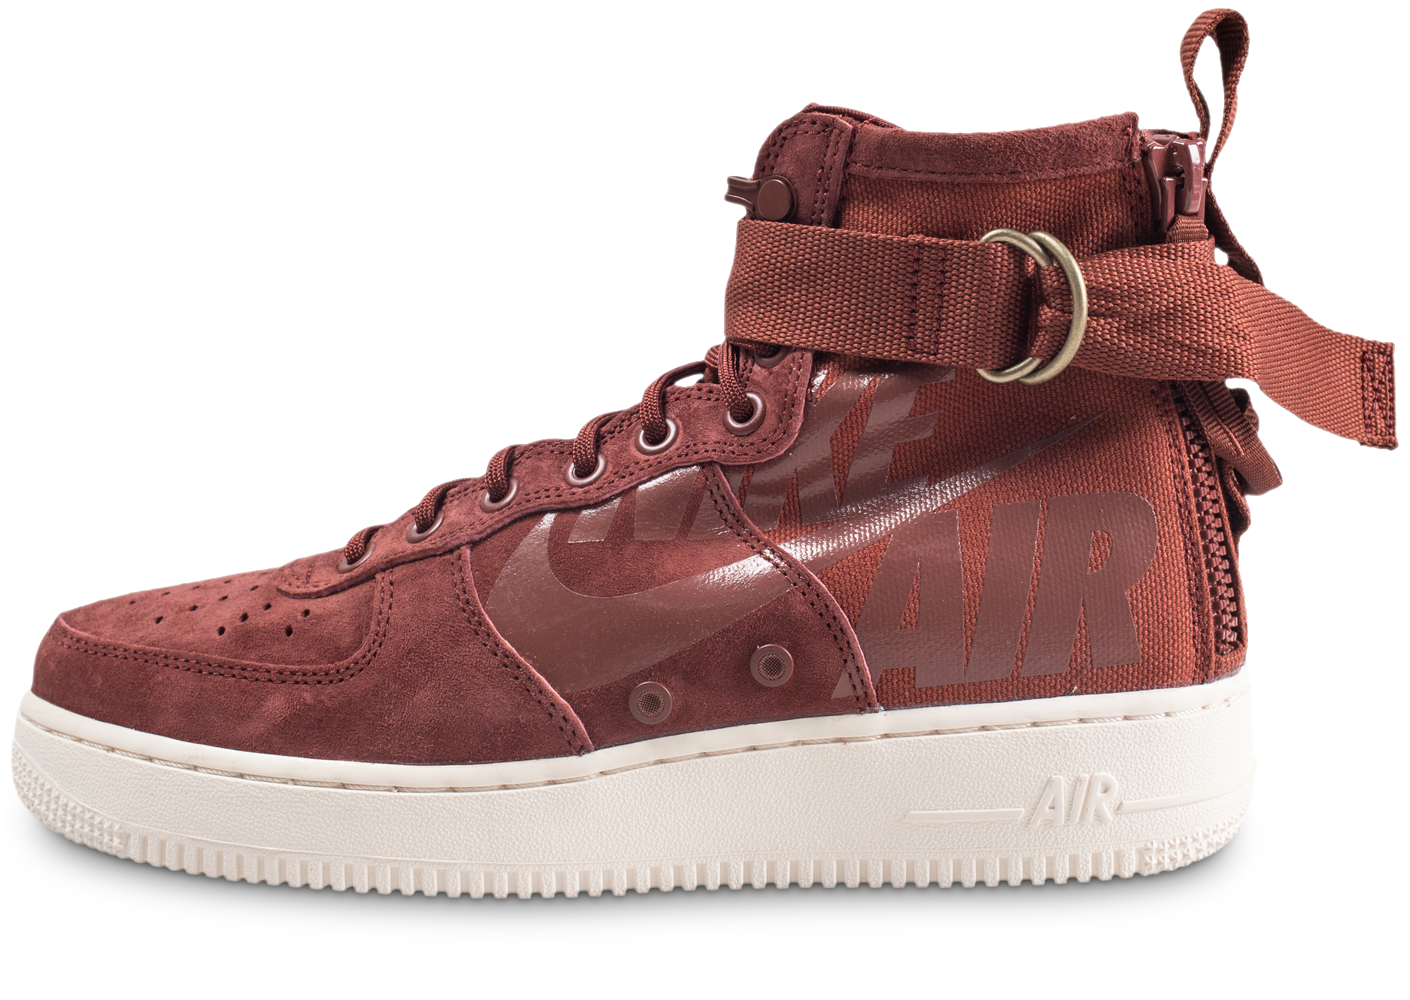 newest 2c8db 36c74 Nike homme sf air force 1 mid marron baskets